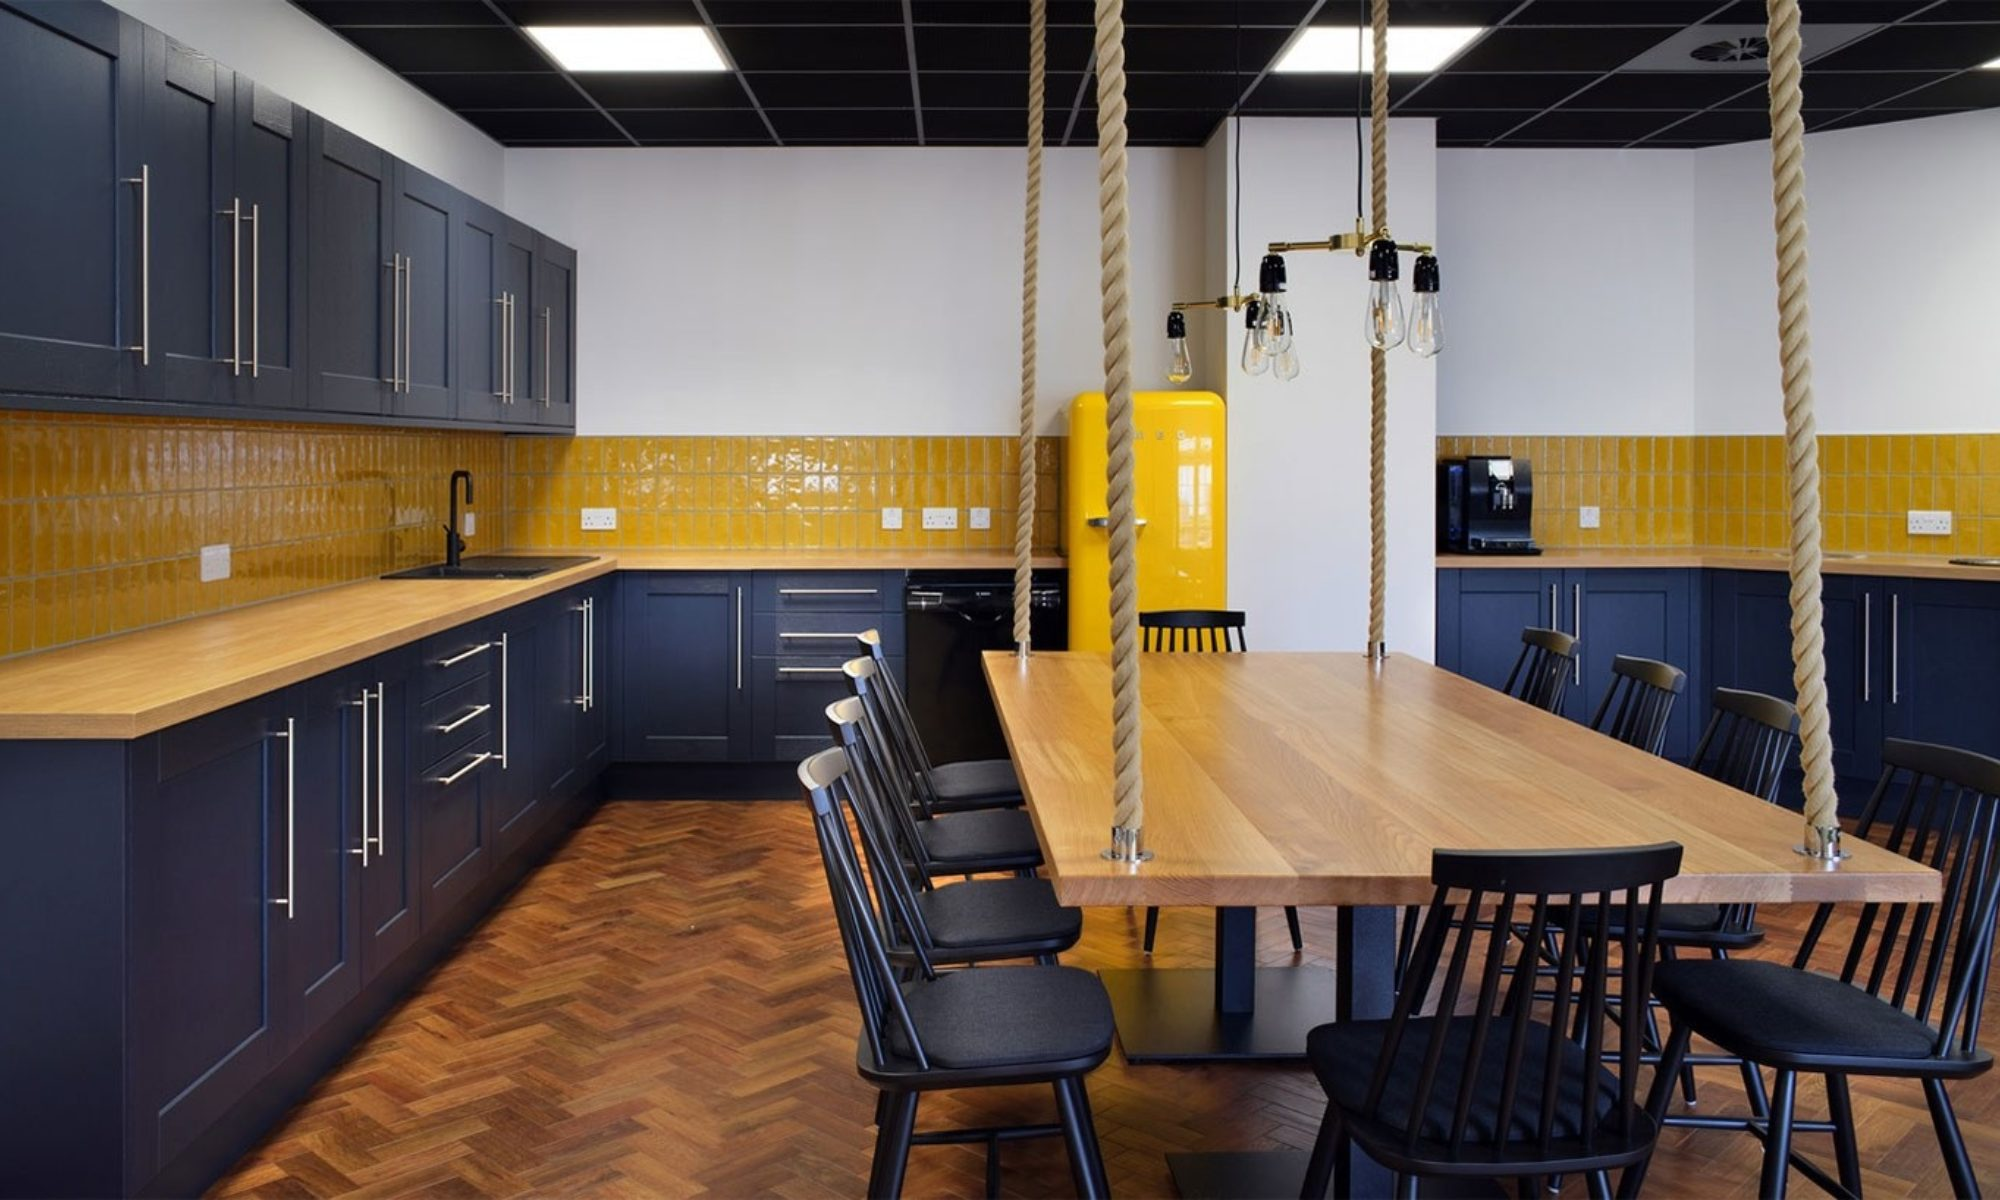 Royal Navy office kitchen design